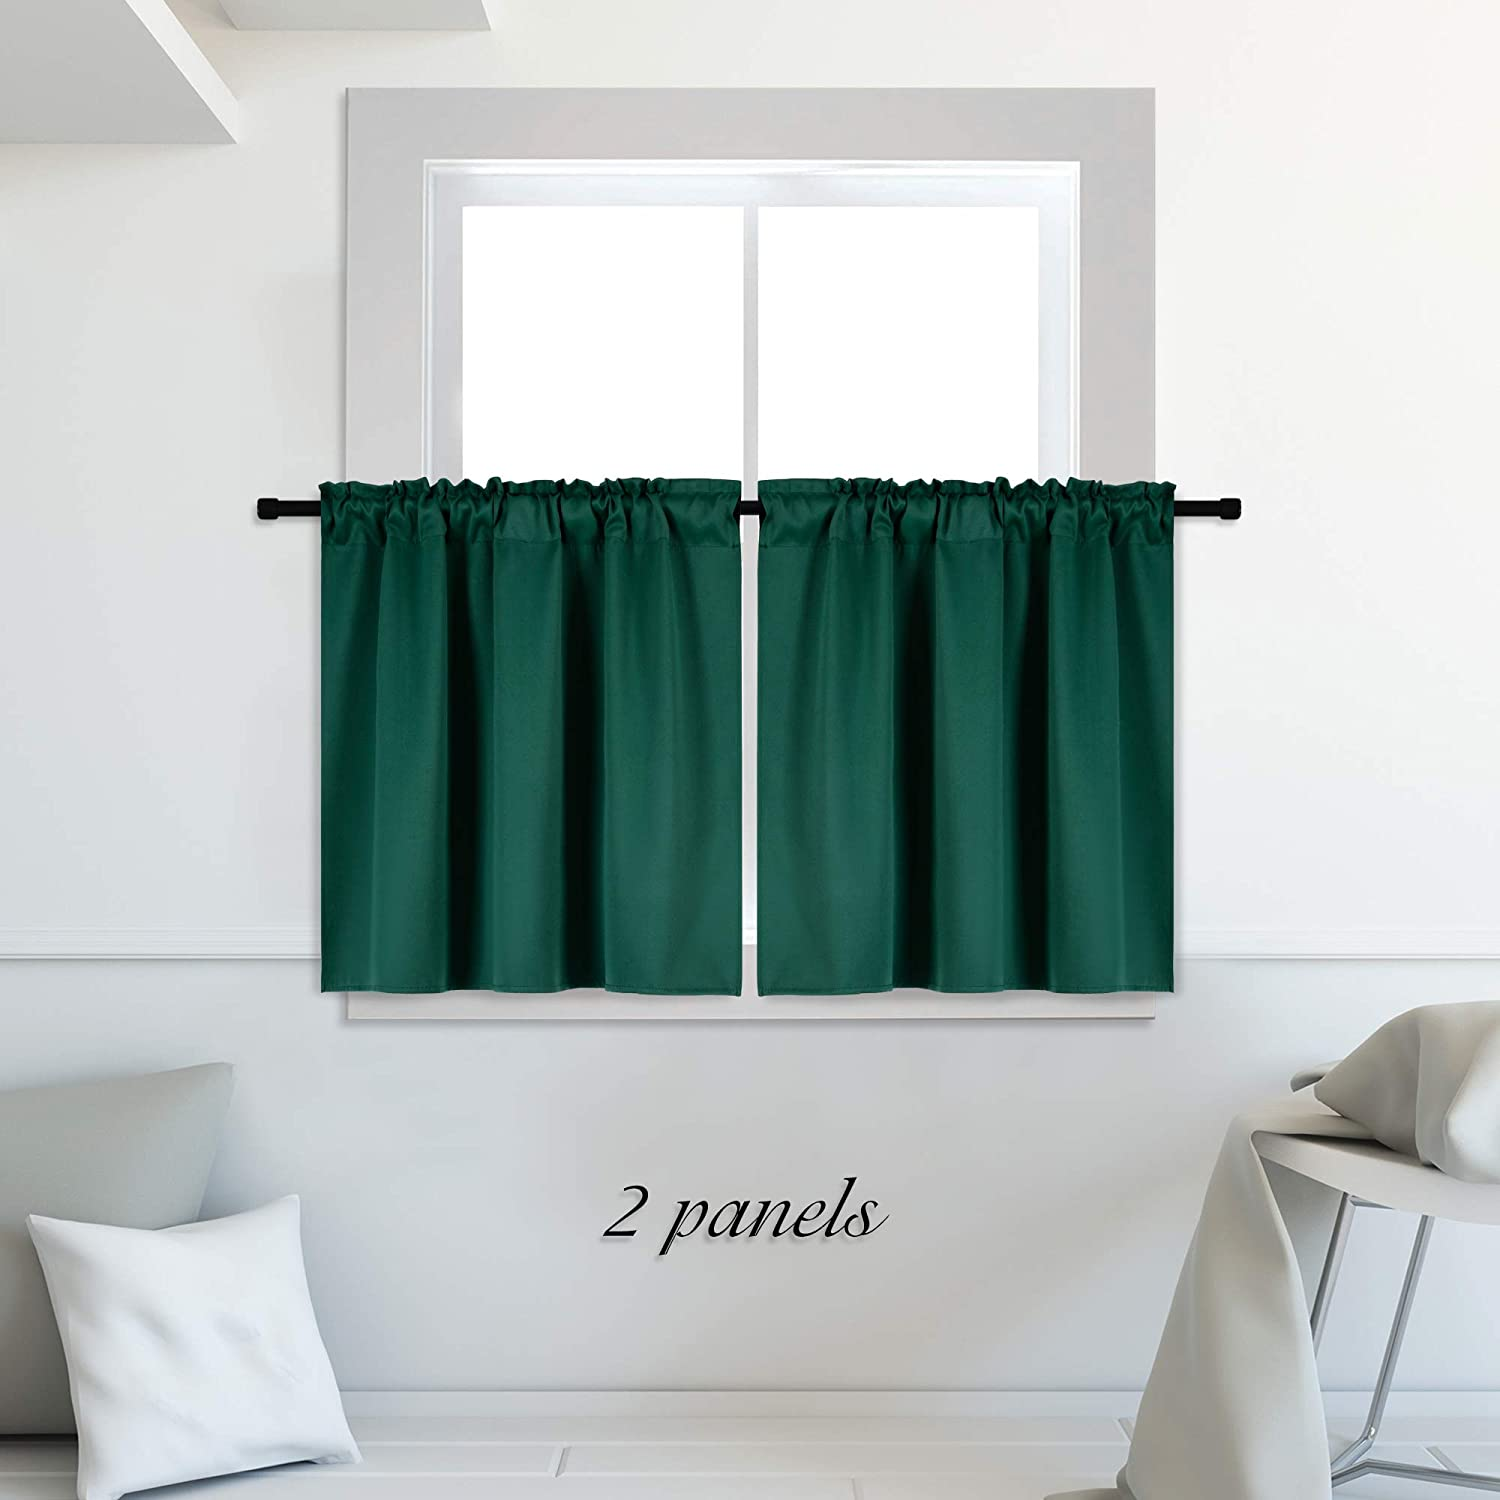 DONREN 24 Inch Length Medium Grey Small Curtains for Bathroom Blackout Thermal Insulating Curtain Tiers for Bedroom with Rod Pocket 42 by 24 Inches,2 Panels